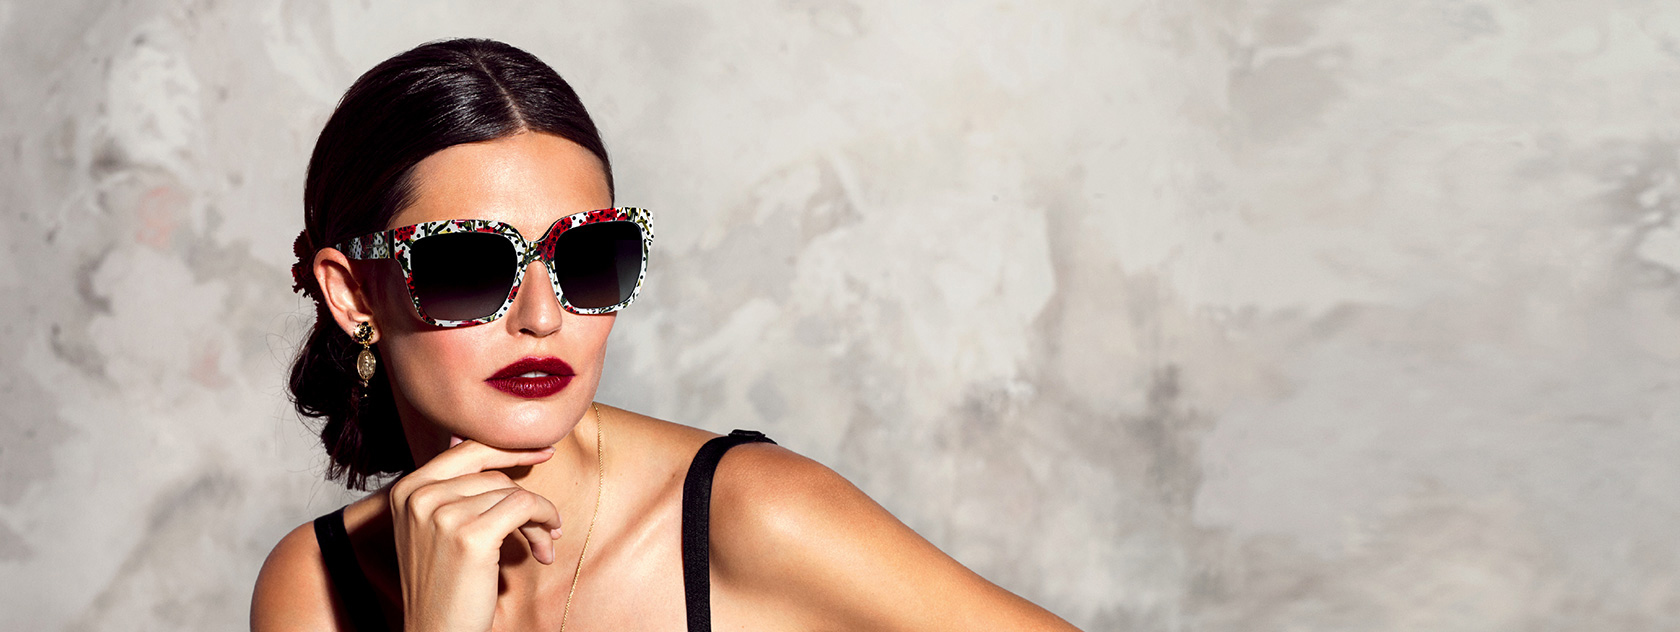 21d803fe4 dolce-and-gabbana-summer-2015-women-advertising-campaign-17-zoom ...